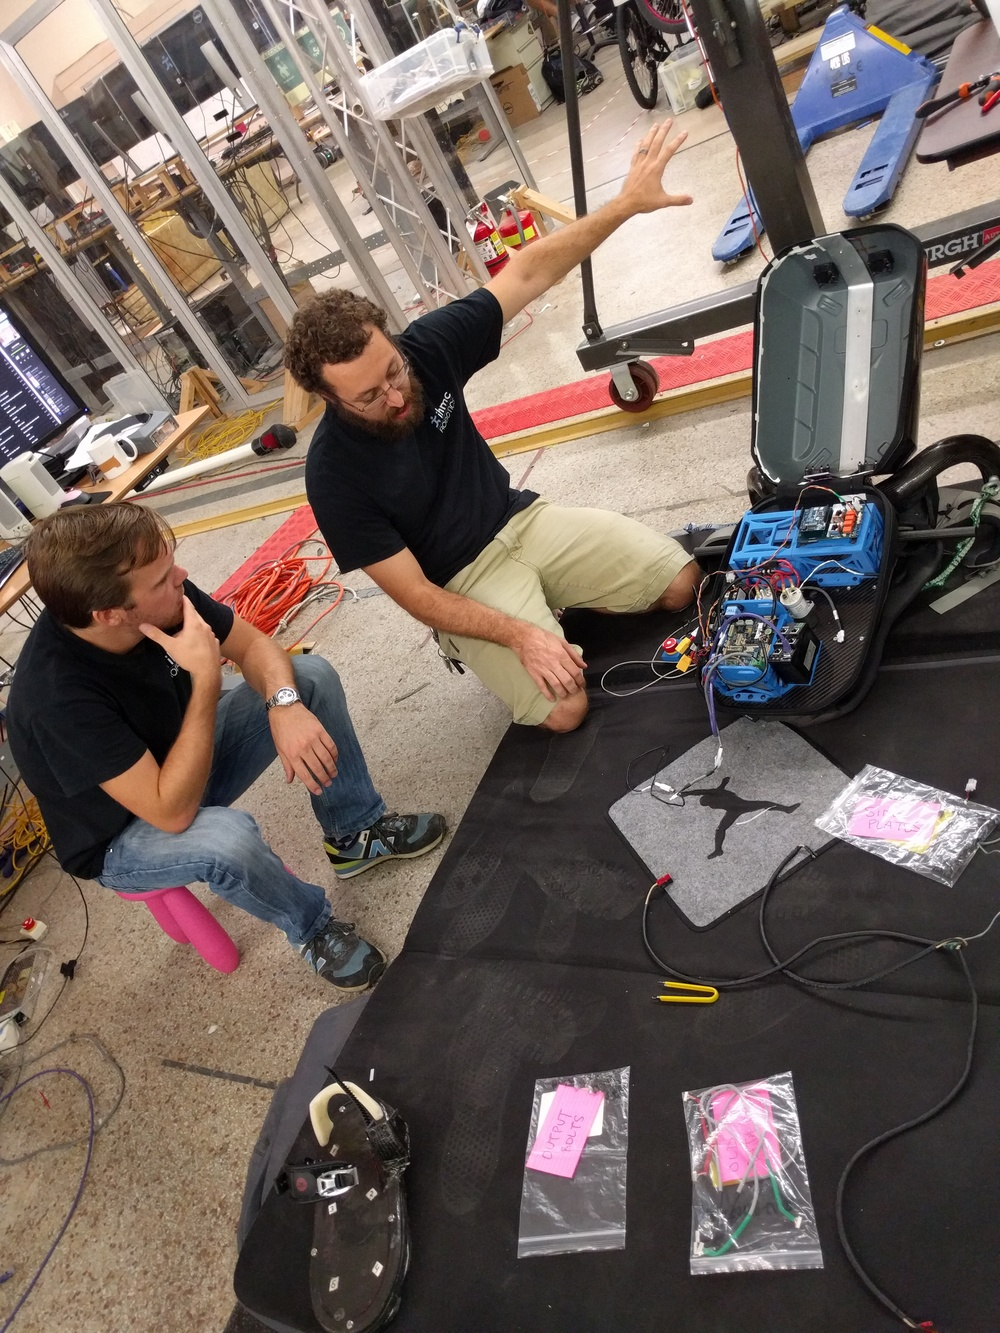 Olger (left) and Travis (right) reviewing the electronics in the backpack.